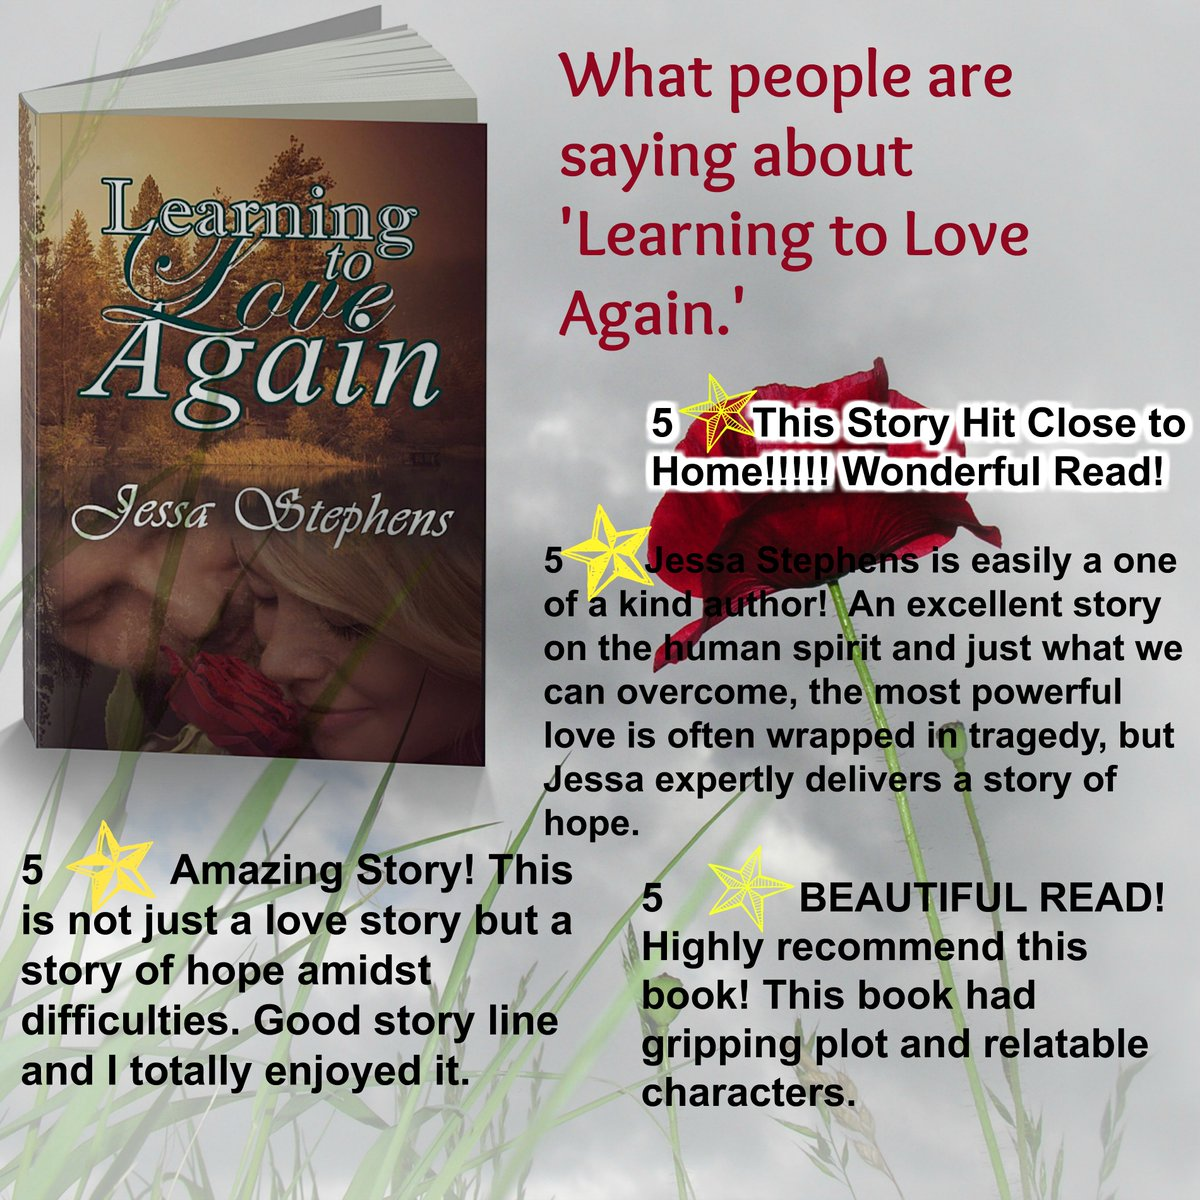 singlemom hashtag on Twitter  singlemom a widowed dad  share  passion  amp  darkness that follows  ASMSG  RWA  Amazon http   smarturl it learningtoloveagain    pic twitter com vpM S Bv k